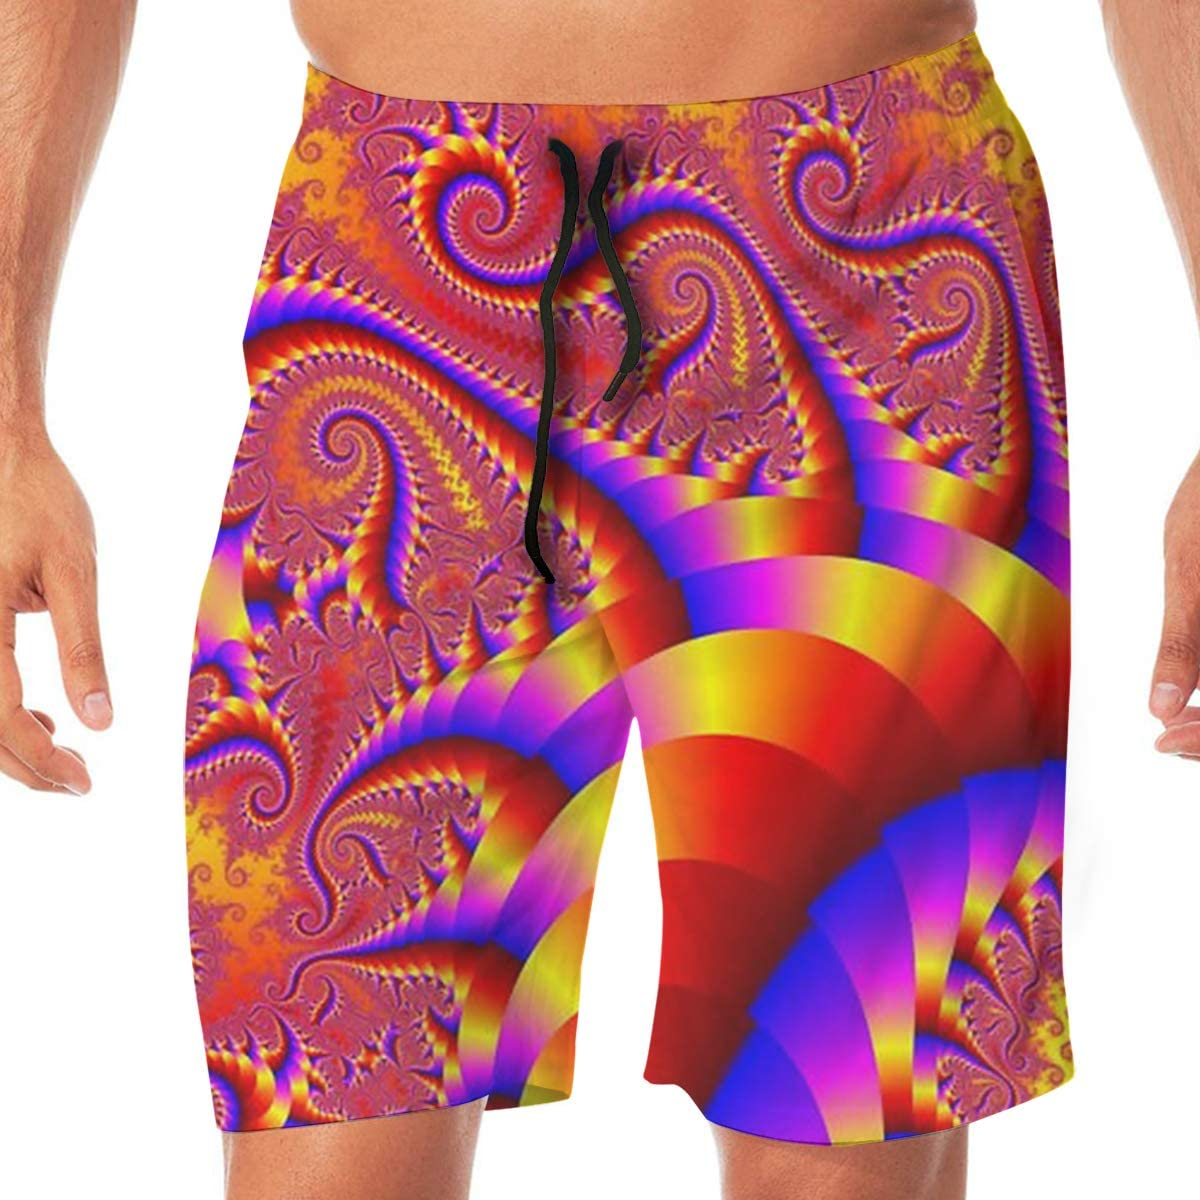 MaoYTUI Red Psychedelic Trippy Art Mens Swim Trunks Boys Quick Dry Bathing Suits Drawstring Waist Beach Broad Shorts Swim Suit Beachwear with Mesh Lining